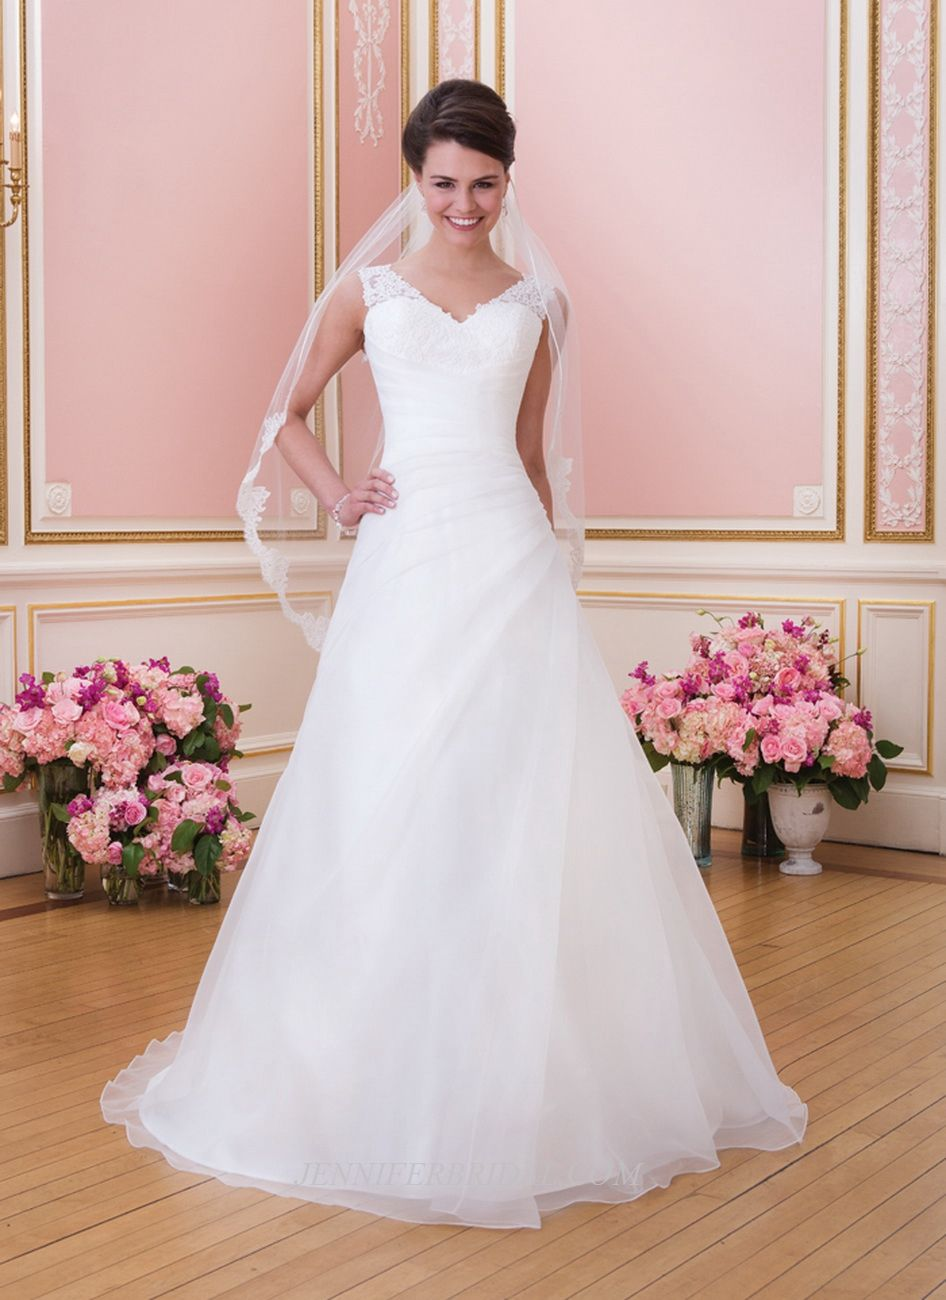 Sweetheart wedding dress price is my dream wedding